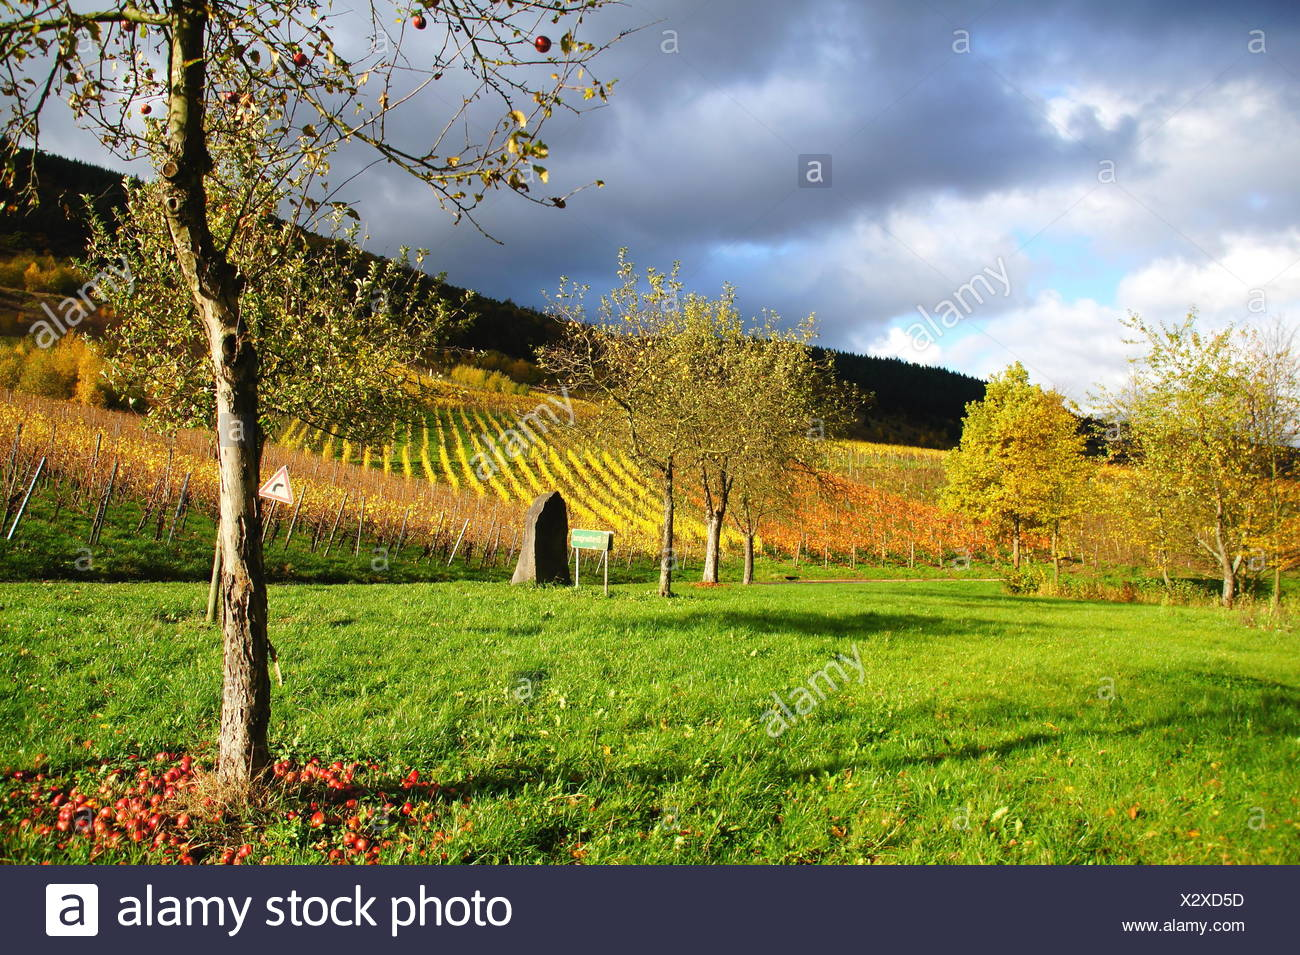 Breitengrad Stock Photos Breitengrad Stock Images Alamy